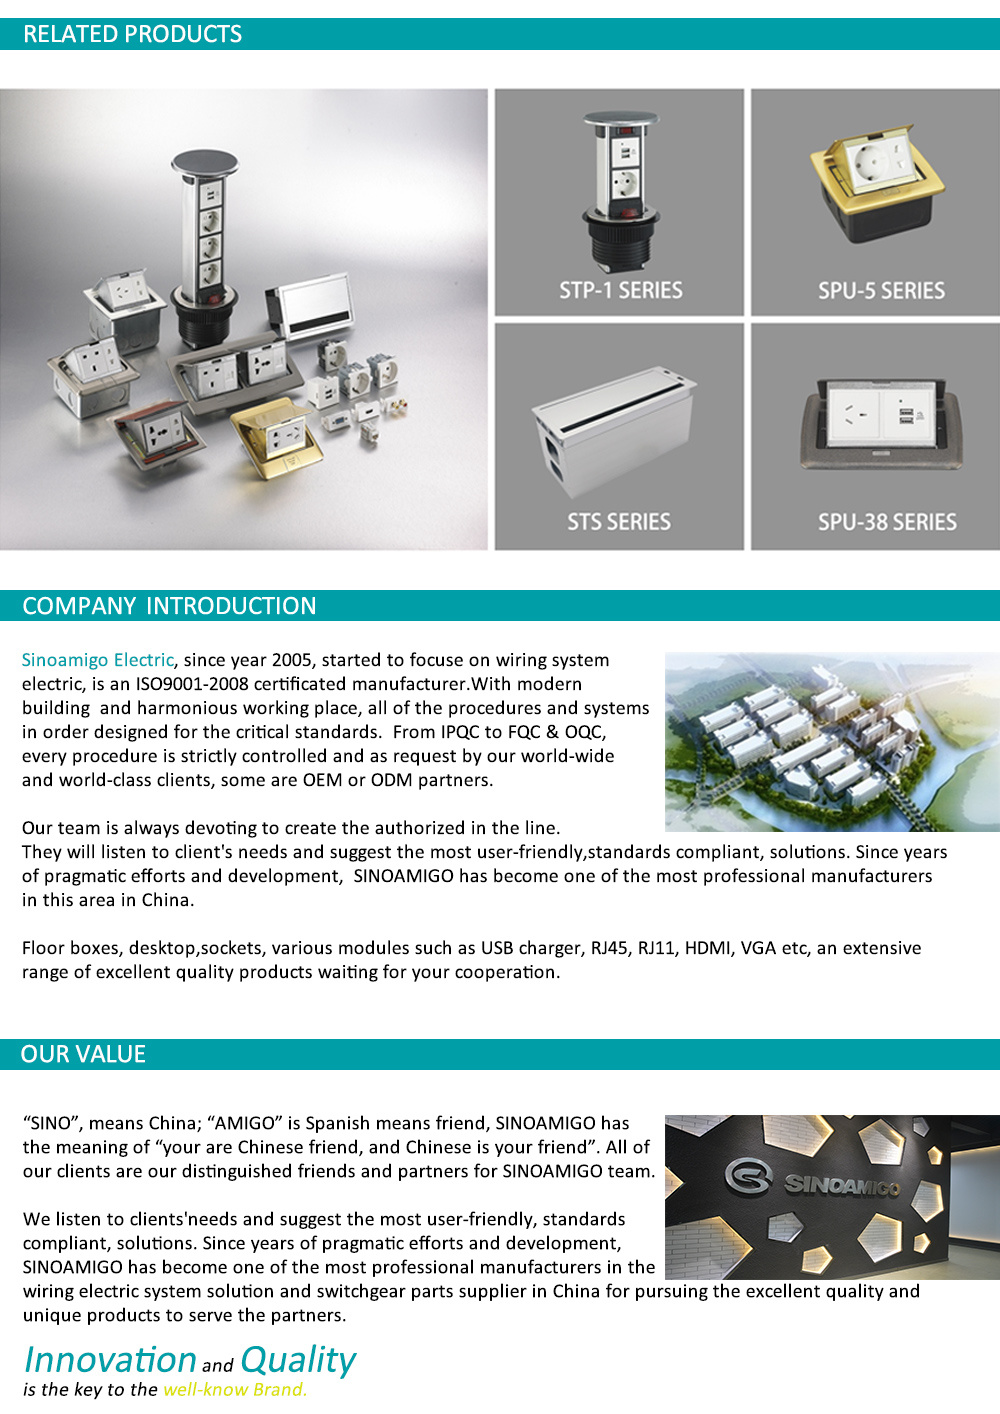 Stainless Steel High Capacity Floor Box China Electrical Wiring In Desk On Or Under Various Models To Meet Your Different Project Conditions Sinoamigo Provides Comprehensive Solutions For Modern